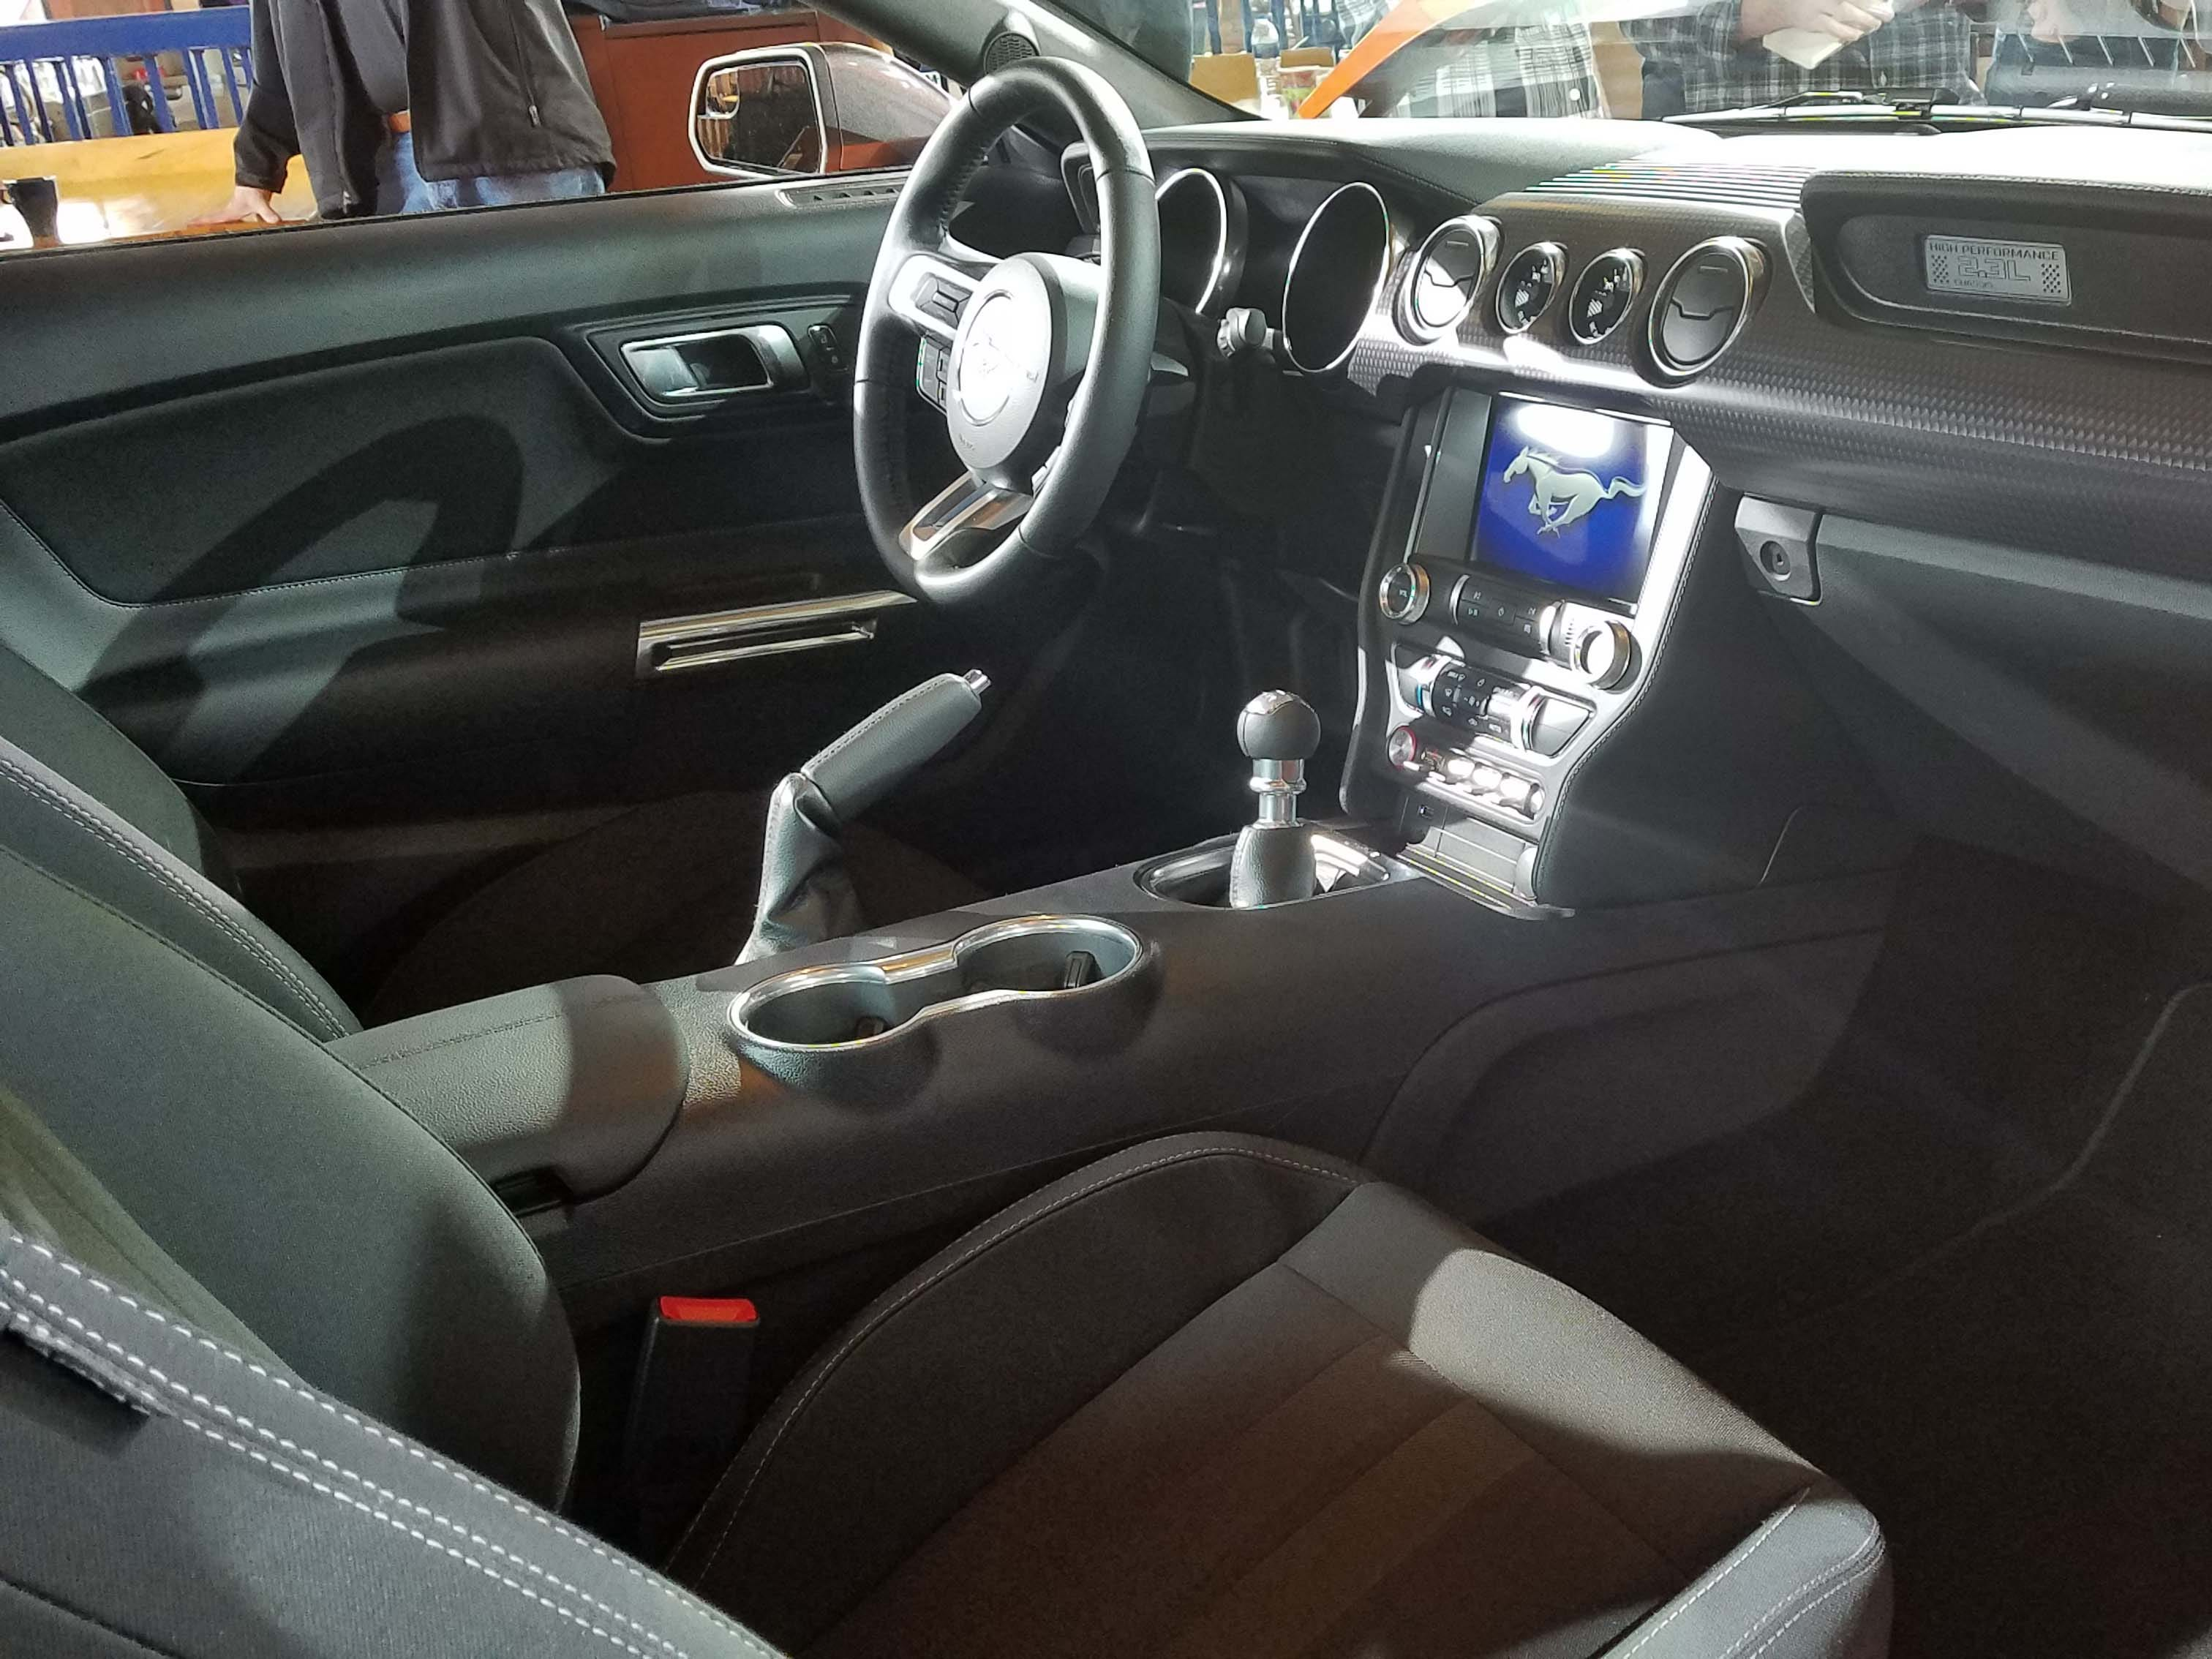 Like all Mustangs, the interior of the Ford Mustang Ecoboost High Performance comes optioned with leather seats, bigger console screen and digital tech.